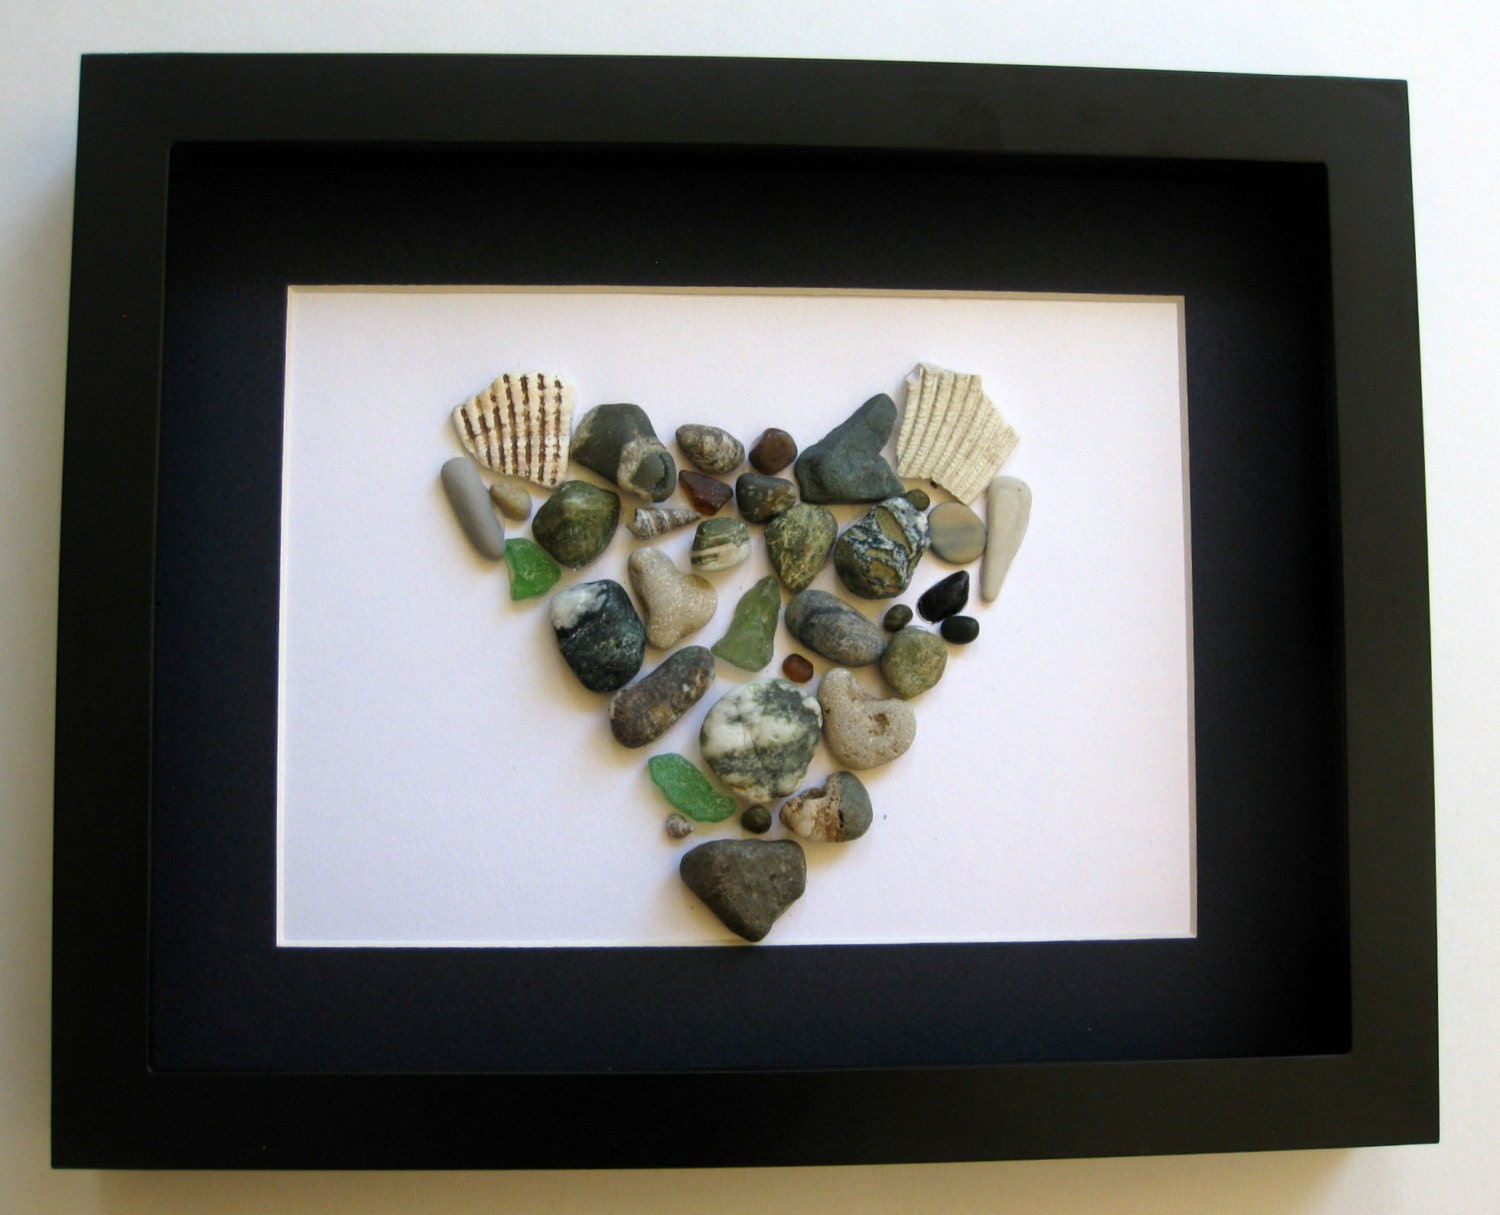 Couple's Heart Themed Art - Personalized Art Work - Unique Home Decor - OOAK - SticksnStone